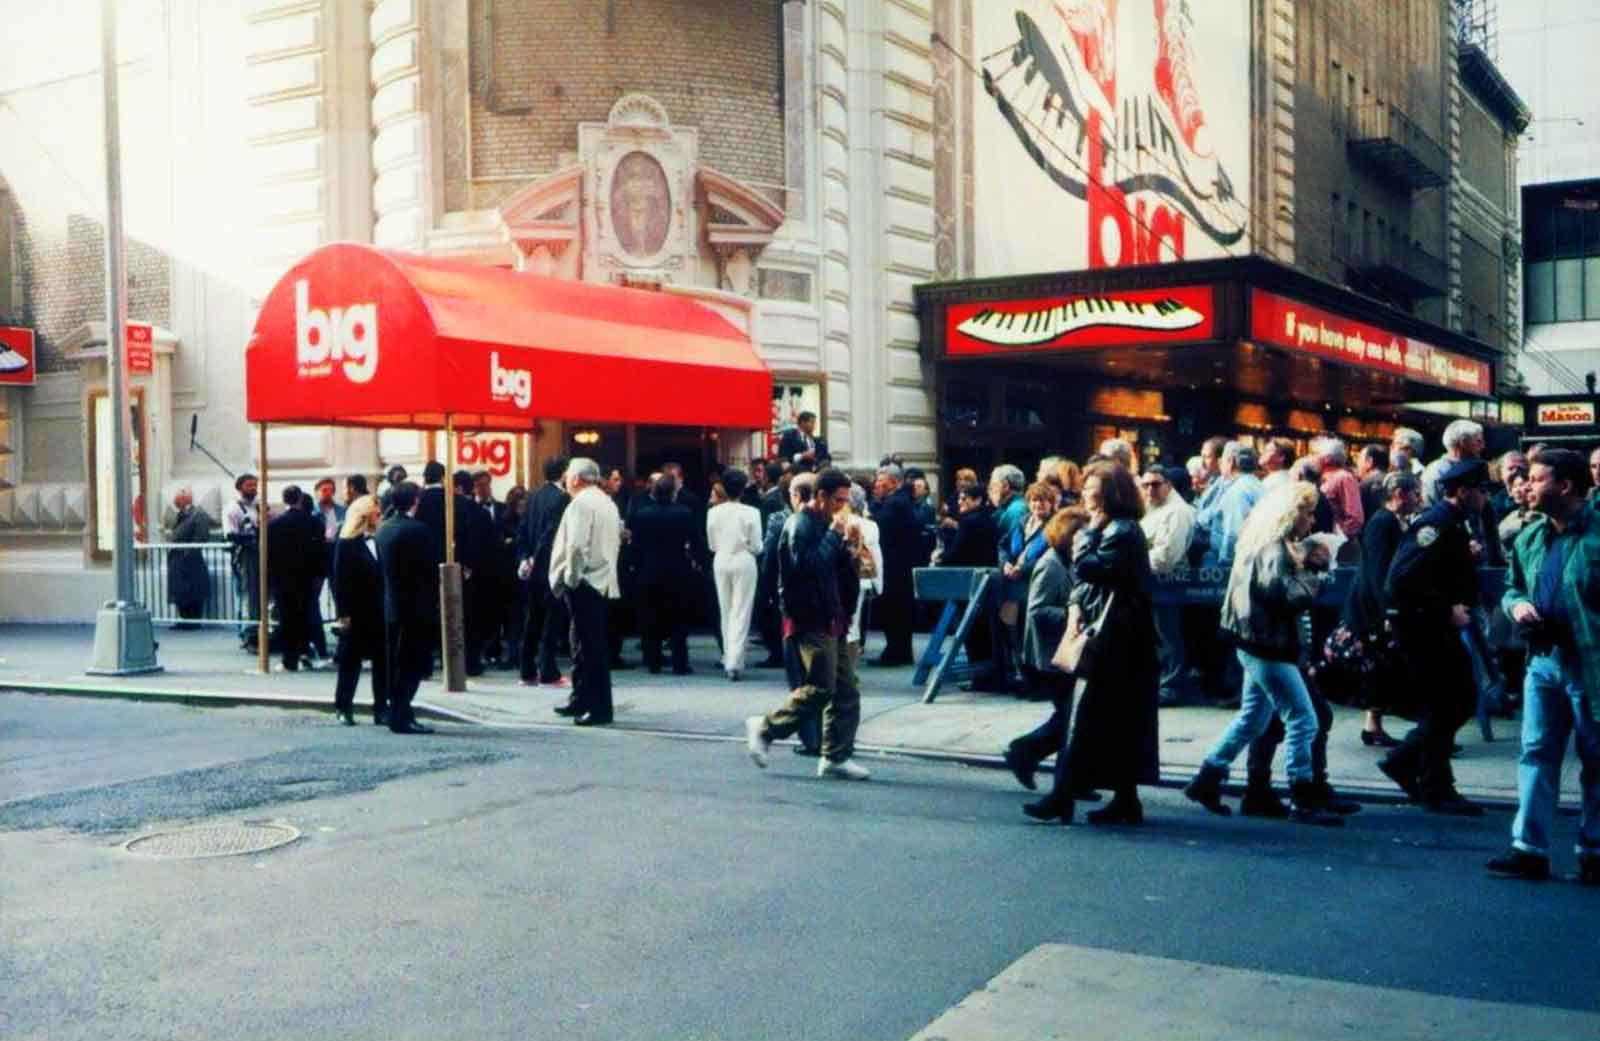 Opening Night of Big The Musical on Broadway at the Shubert Theatre. Show logo on the marquee and theatre entrance, with a crowd of people waiting to get inside.